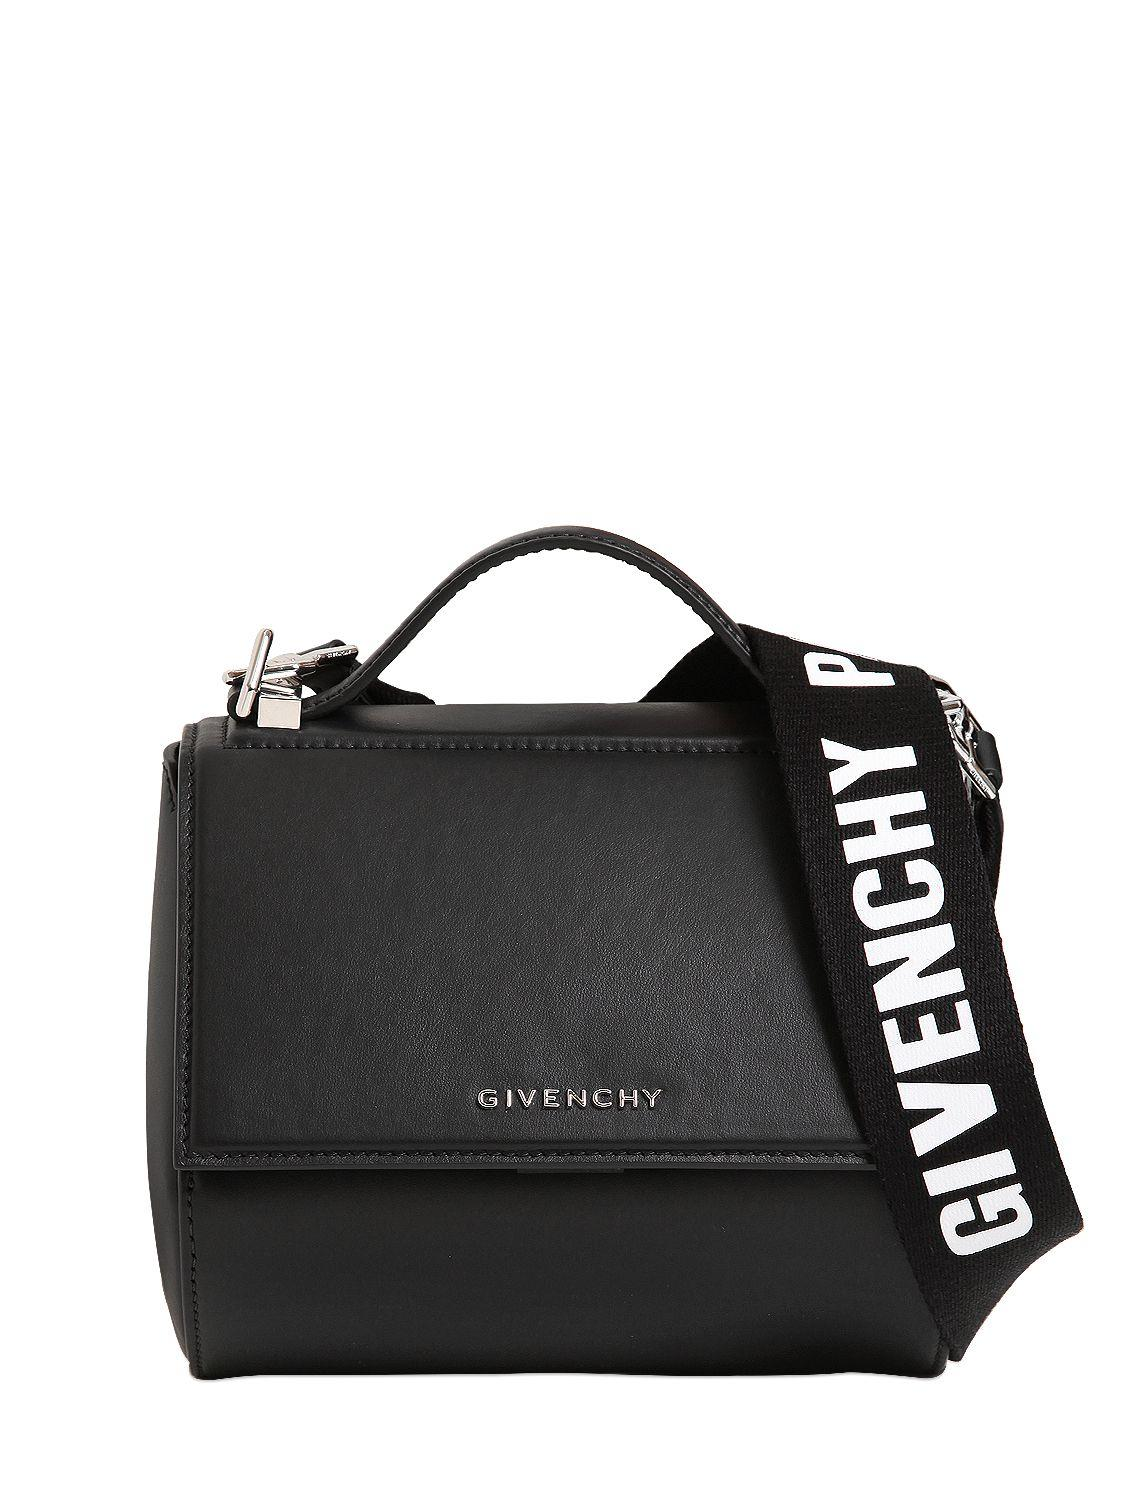 Mini Pandora Box Bag With Givenchy Paris Strap Price  815db4559dd2c